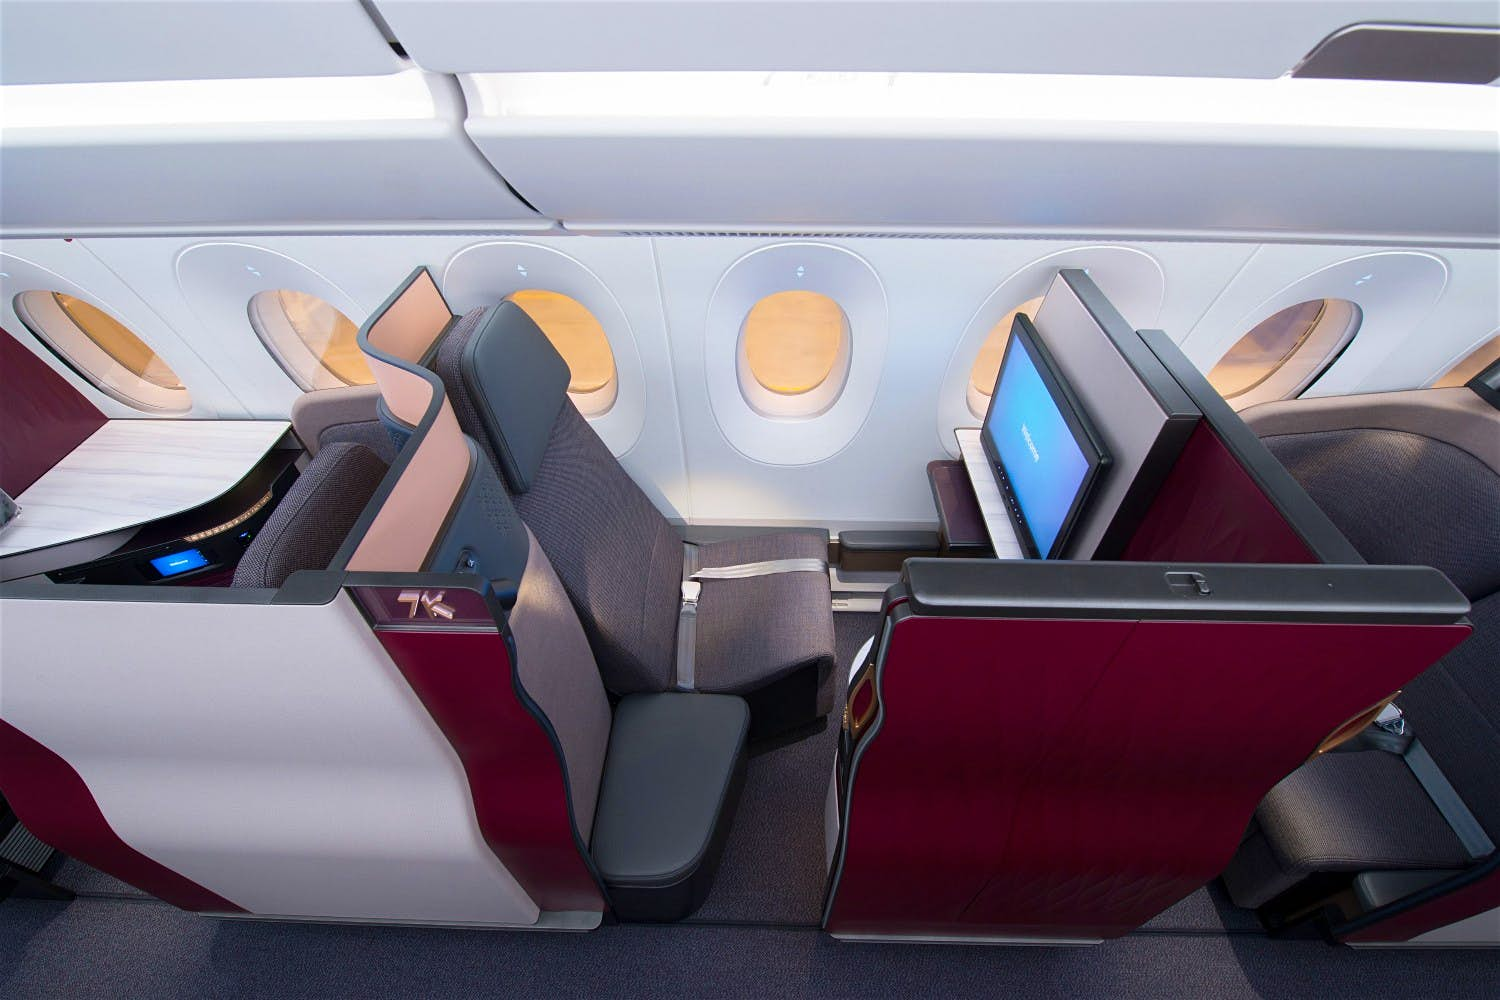 Europe to Far East Asia in Business Class starting from €1,179/£1,022 | Points to be Made